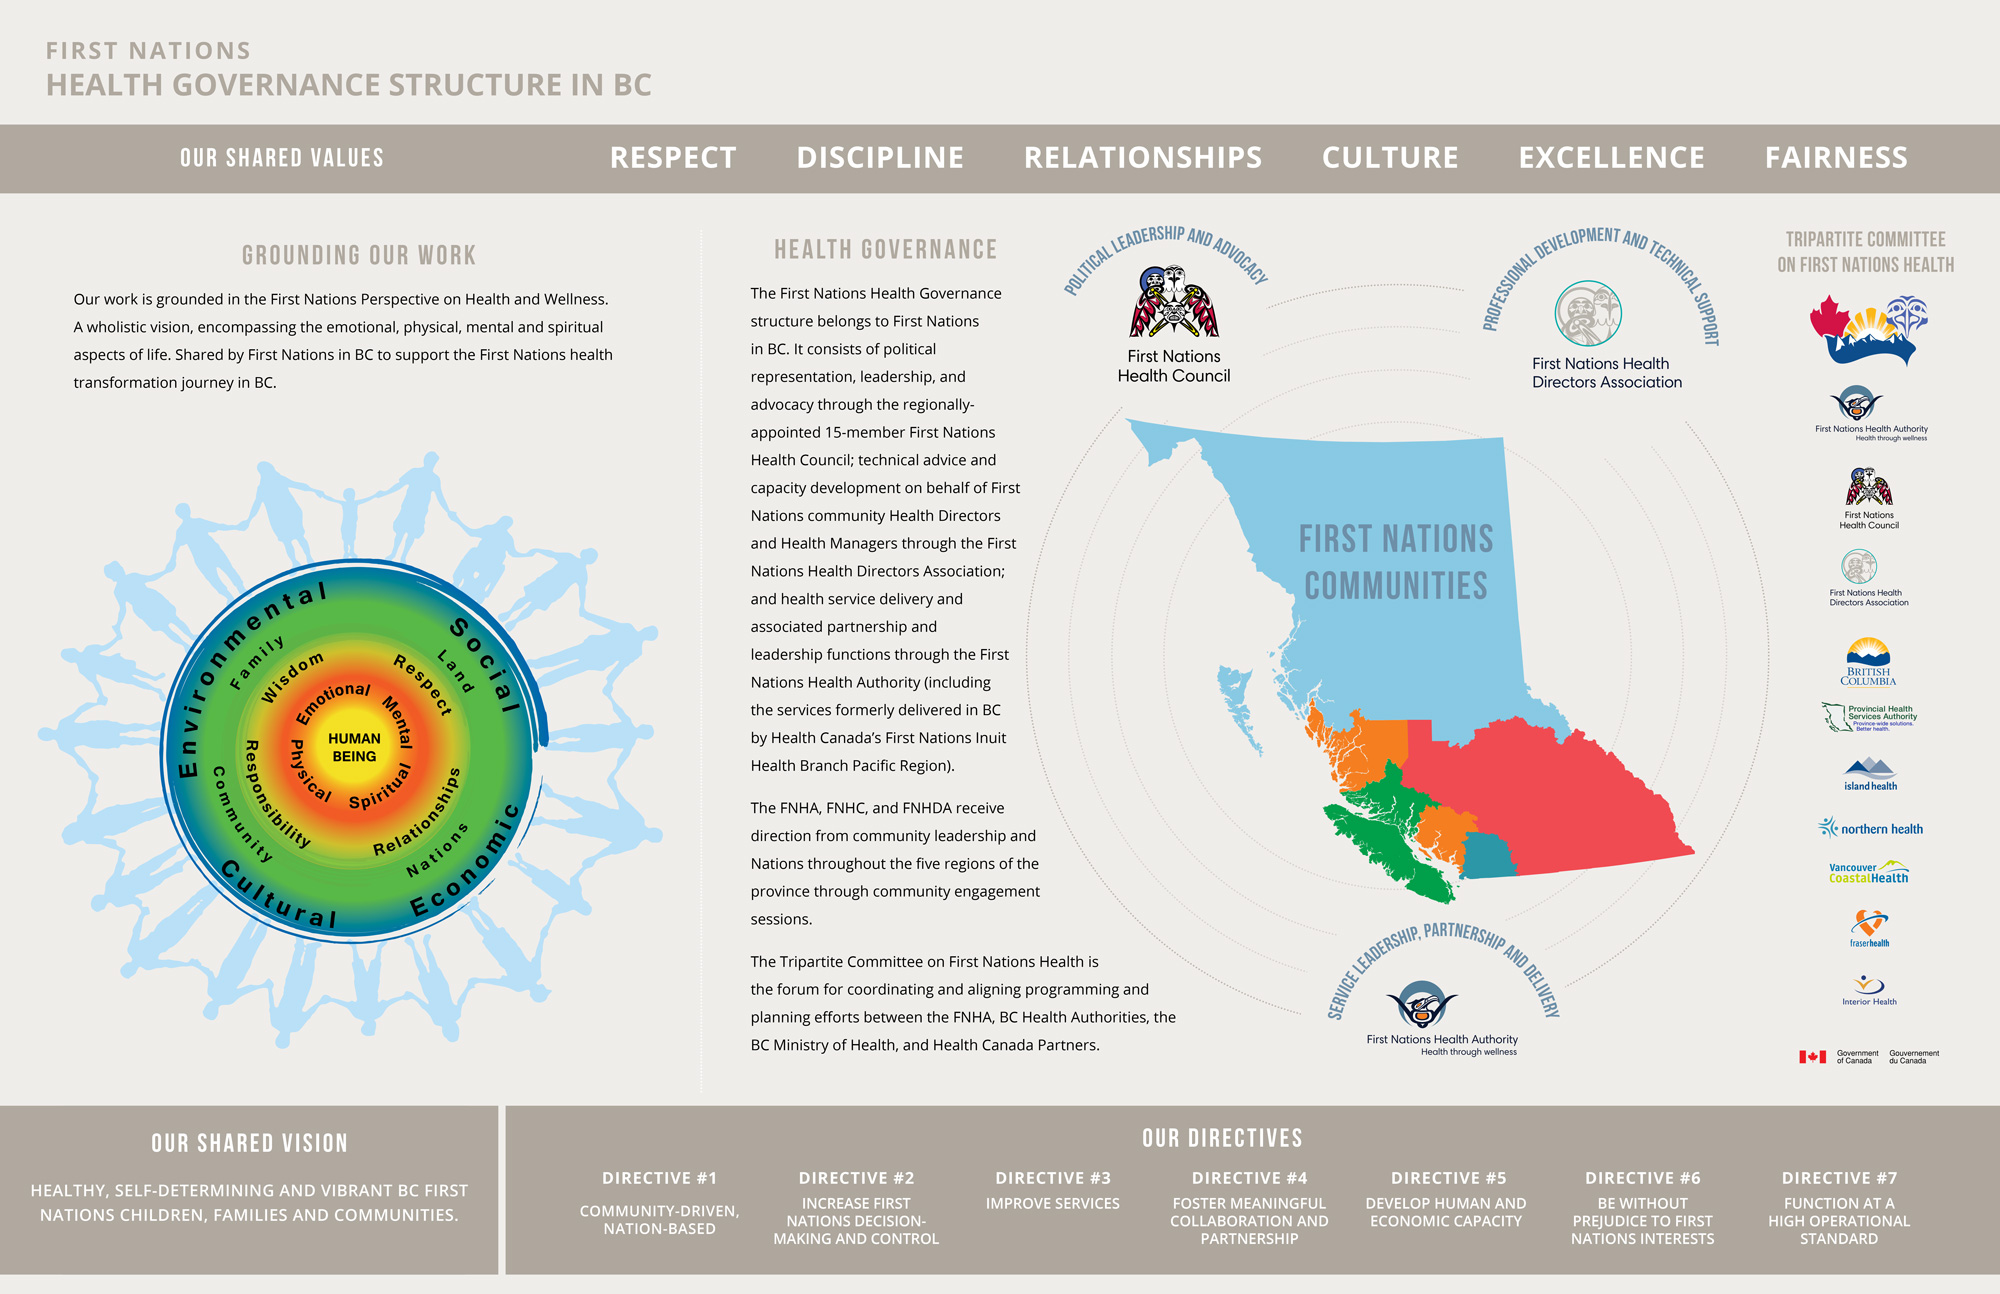 First-Nations-Health-Governance-Structure-in-BC-Placemat.jpg